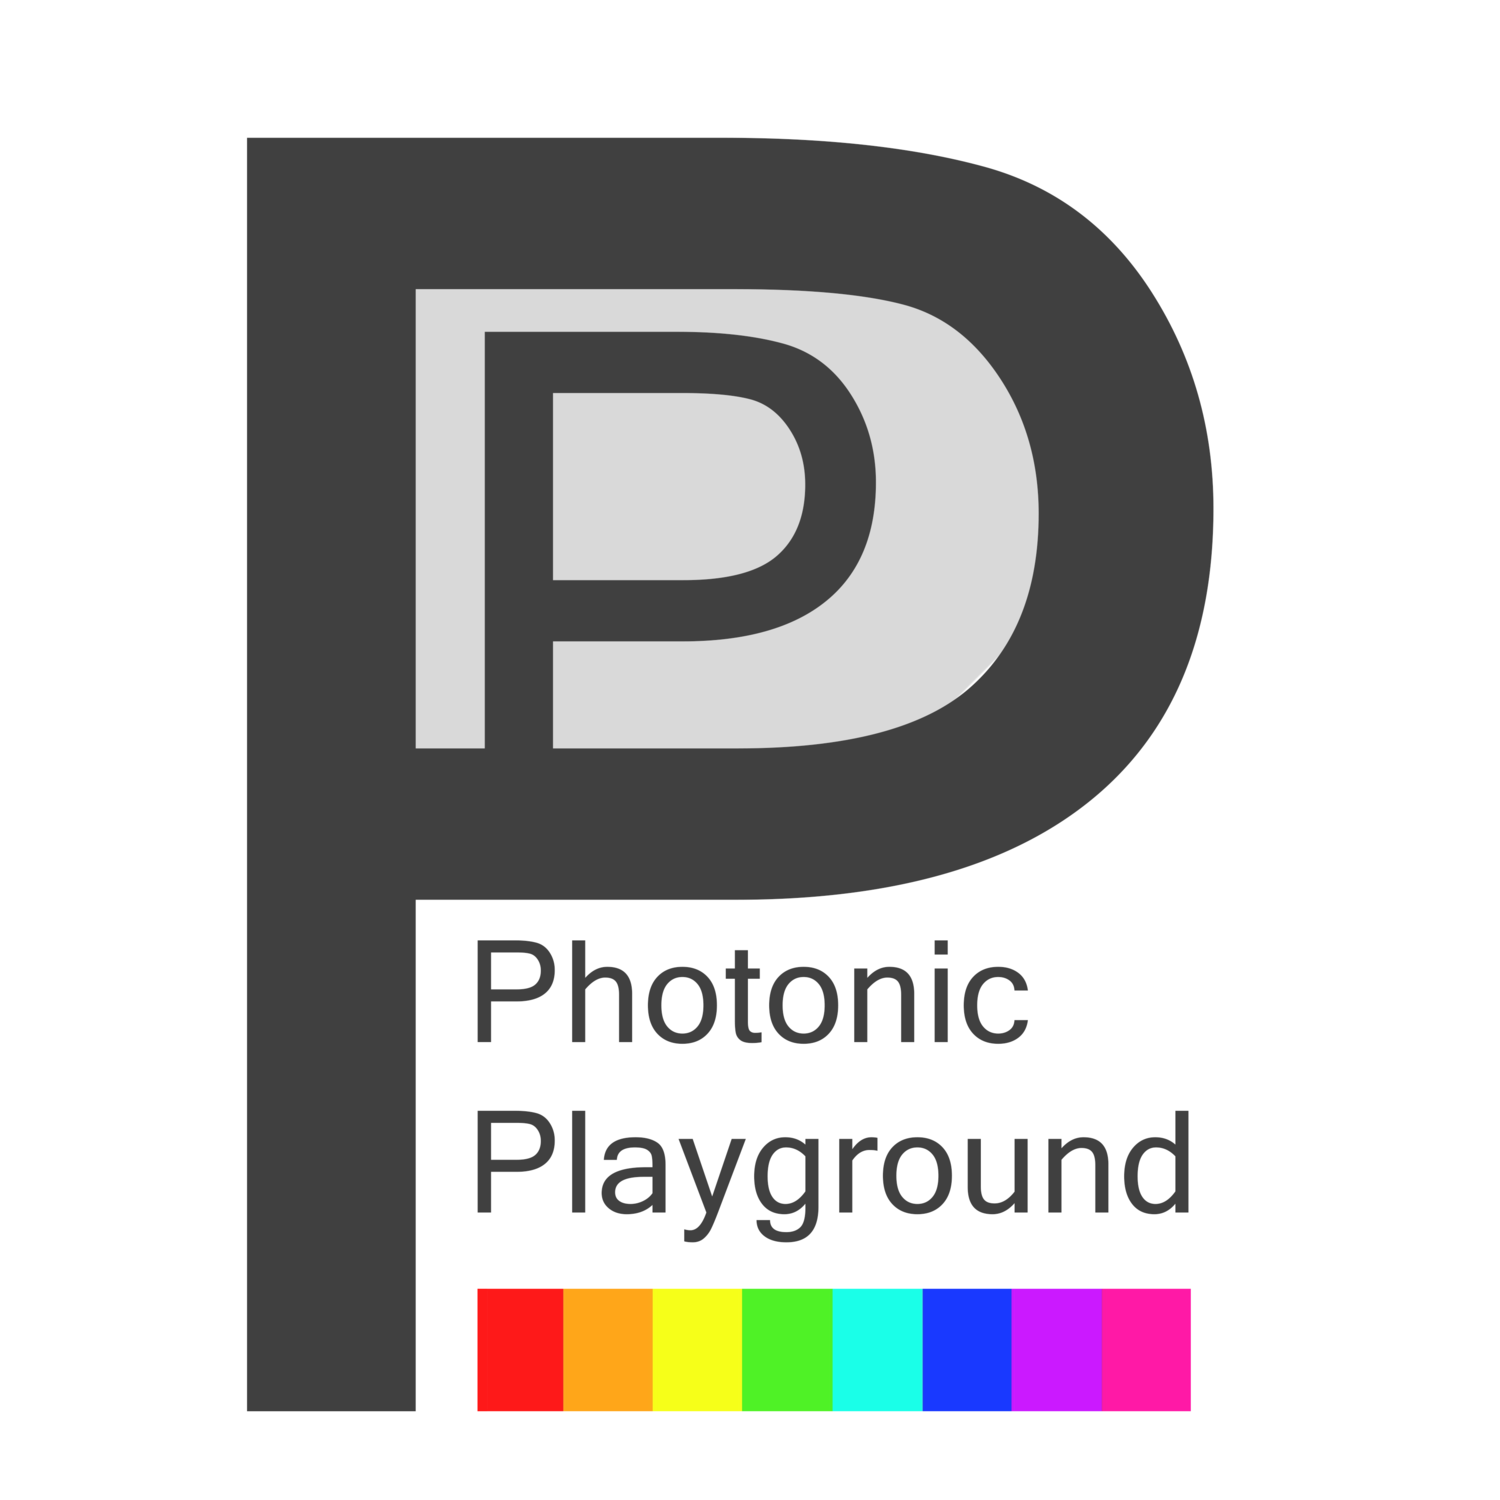 Photonic Playground